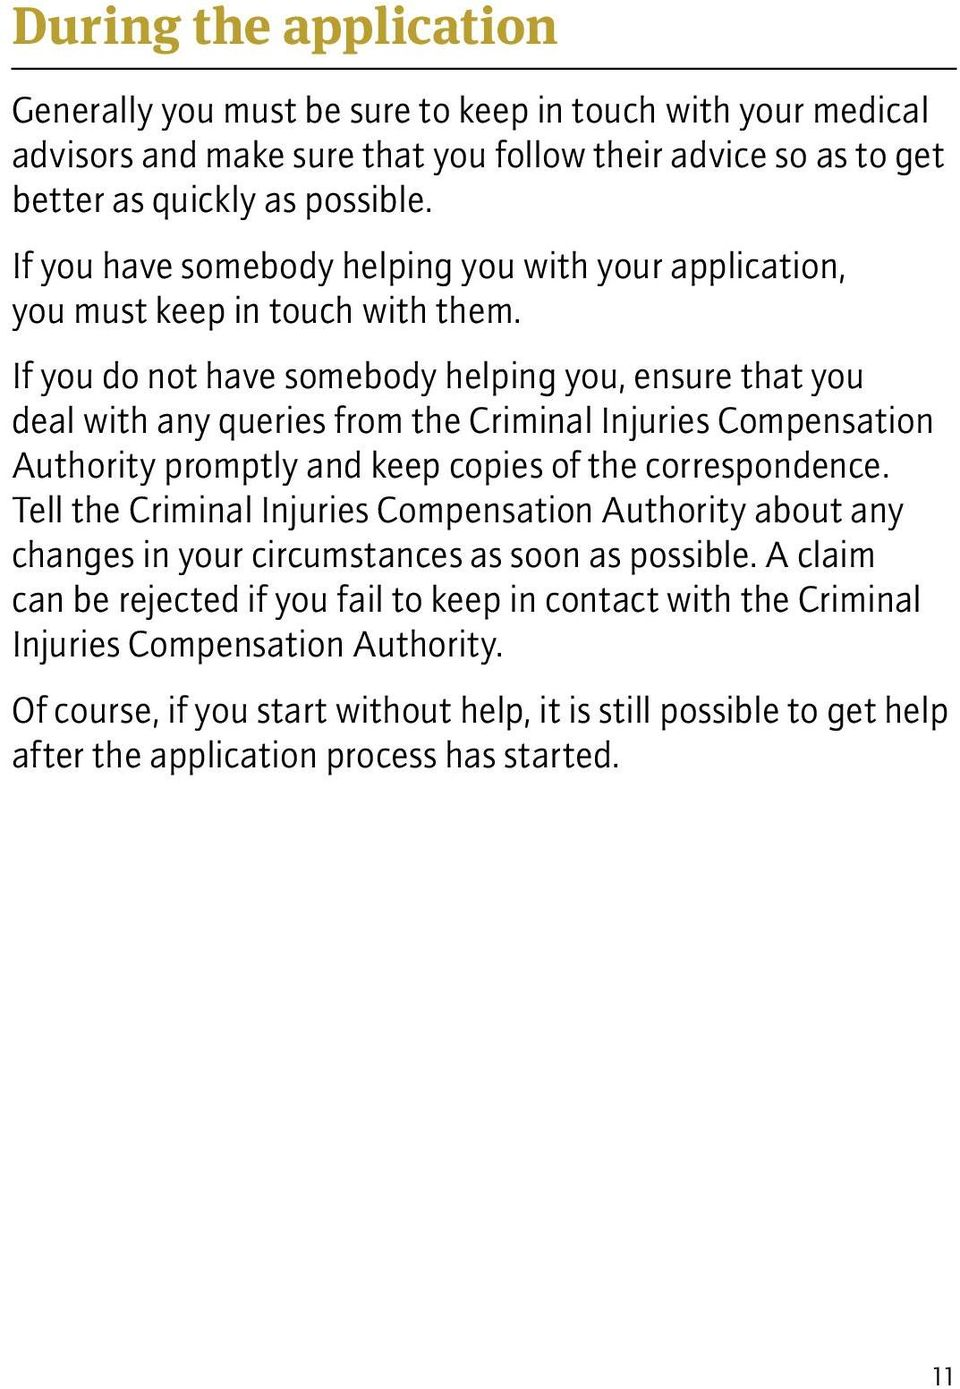 If you do not have somebody helping you, ensure that you deal with any queries from the Criminal Injuries Compensation Authority promptly and keep copies of the correspondence.